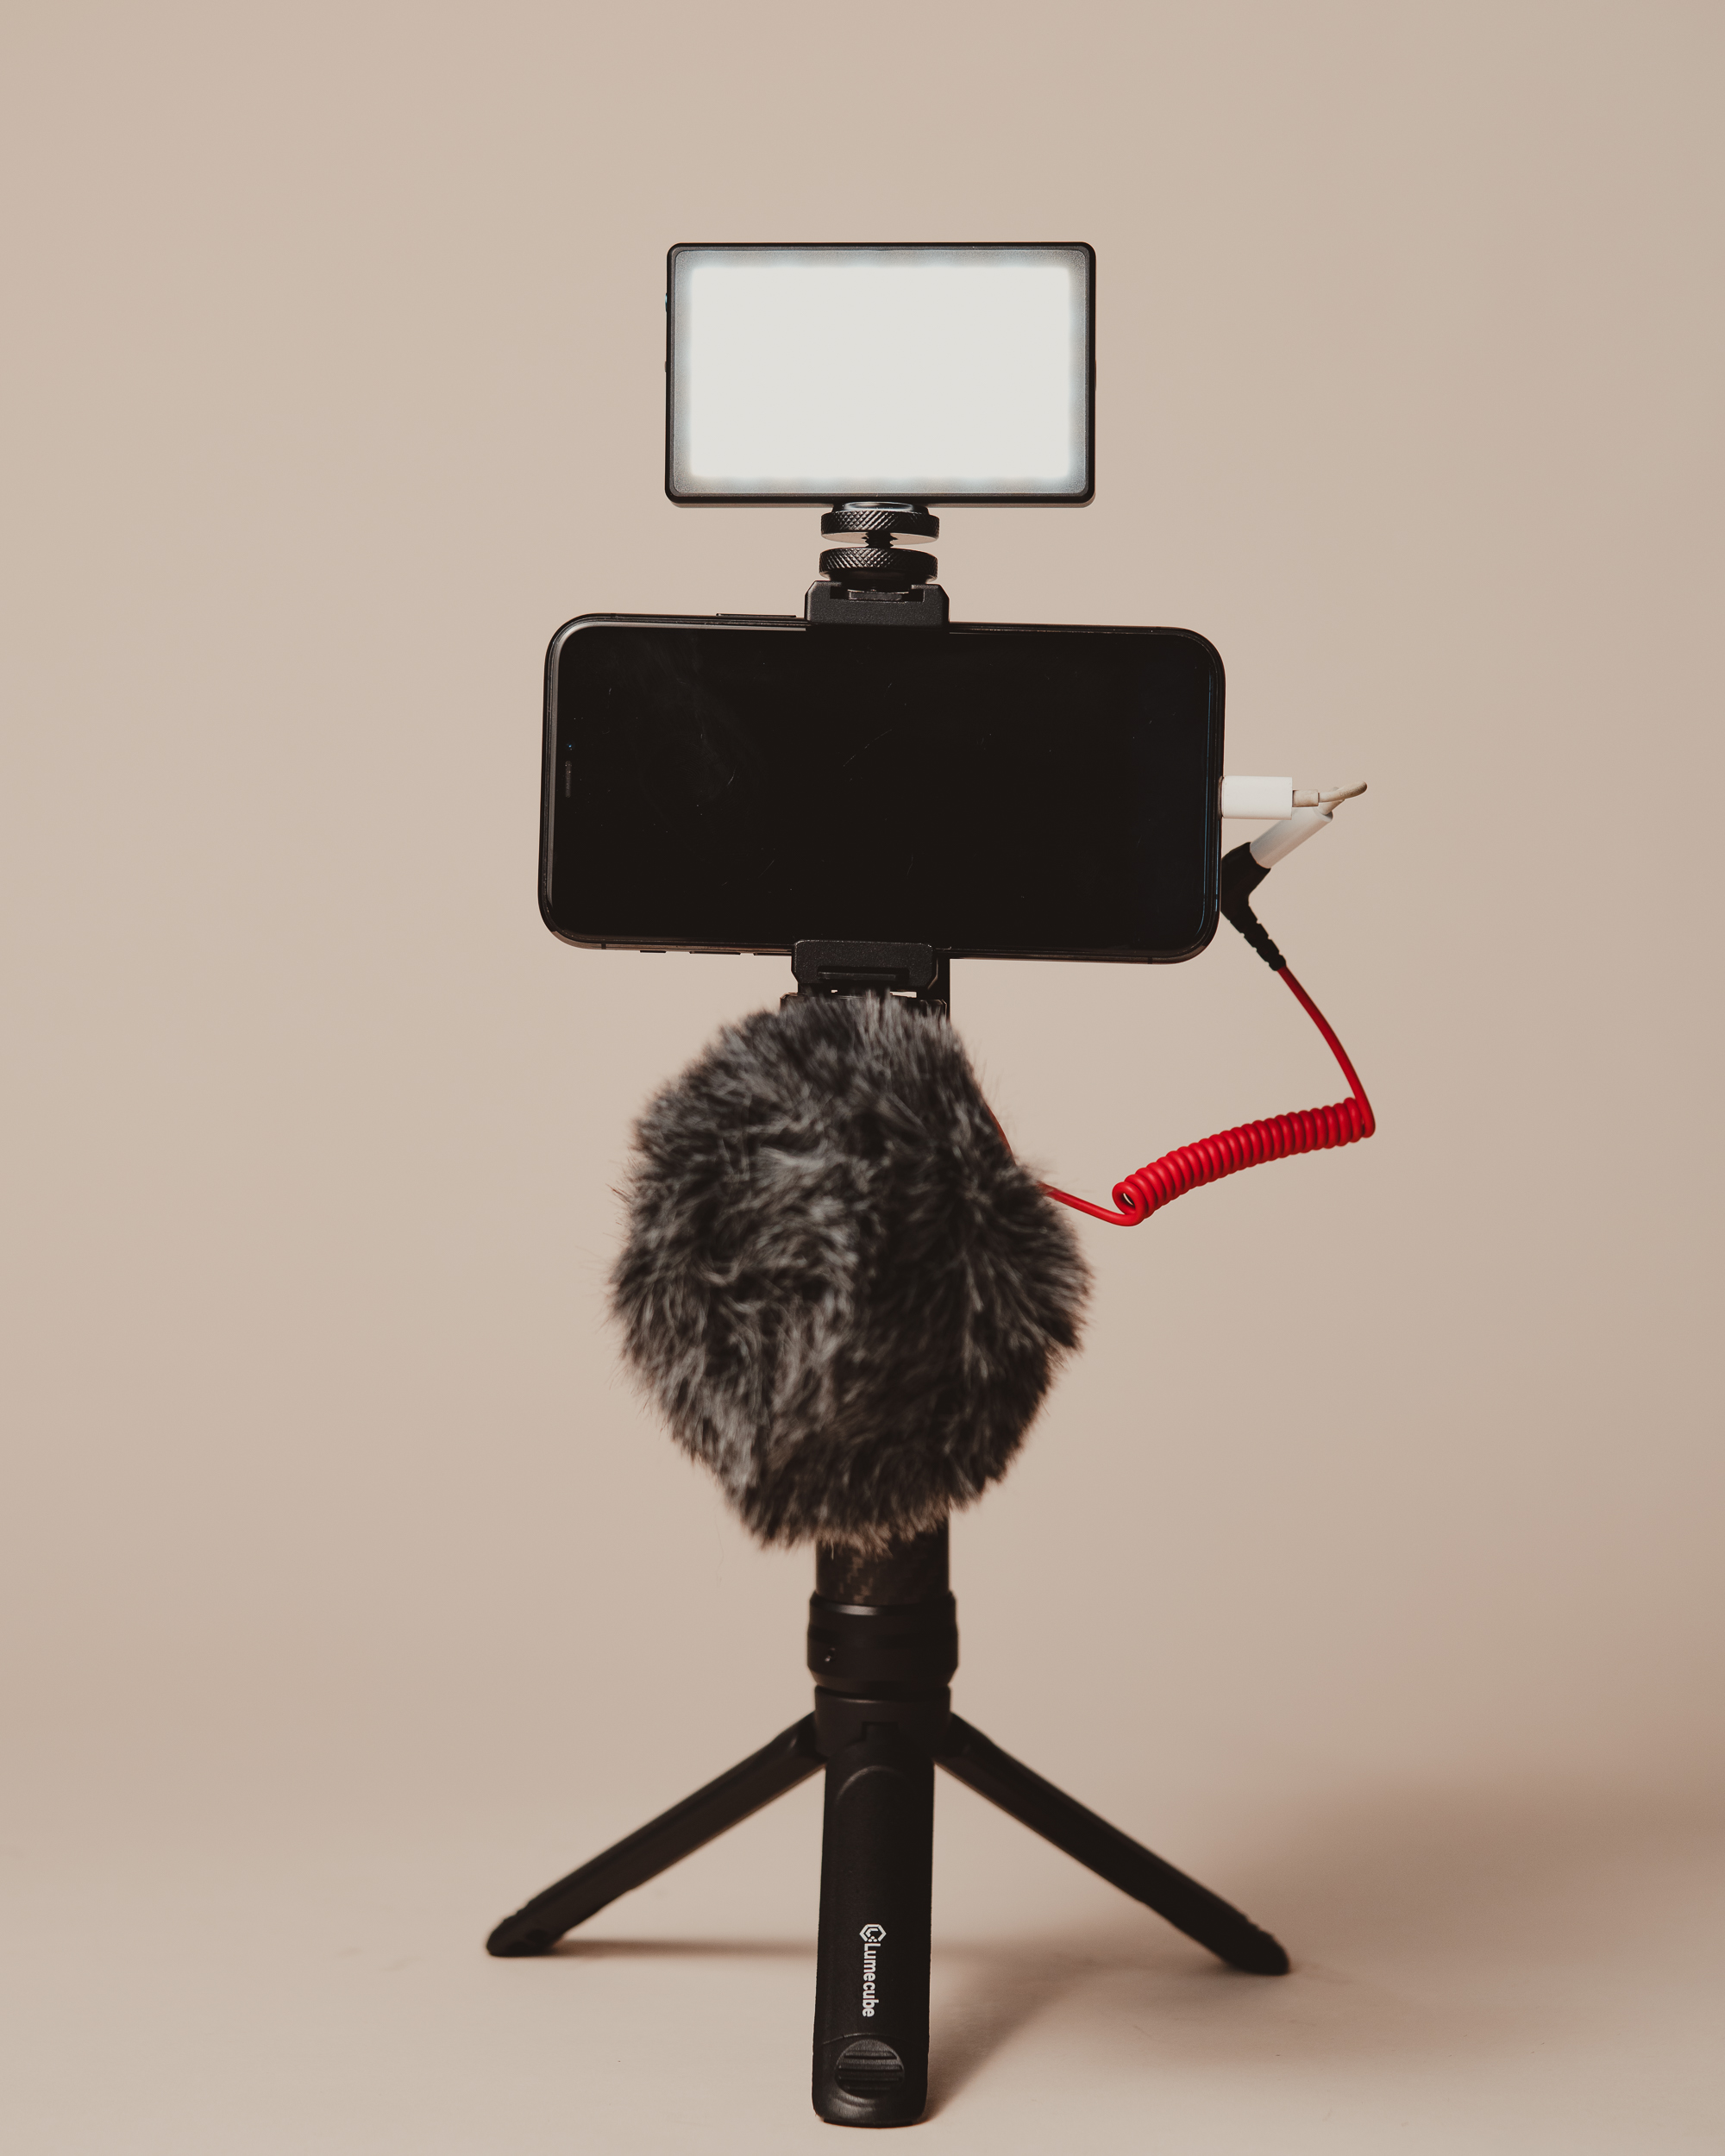 mobile creator kit with one light and microphone